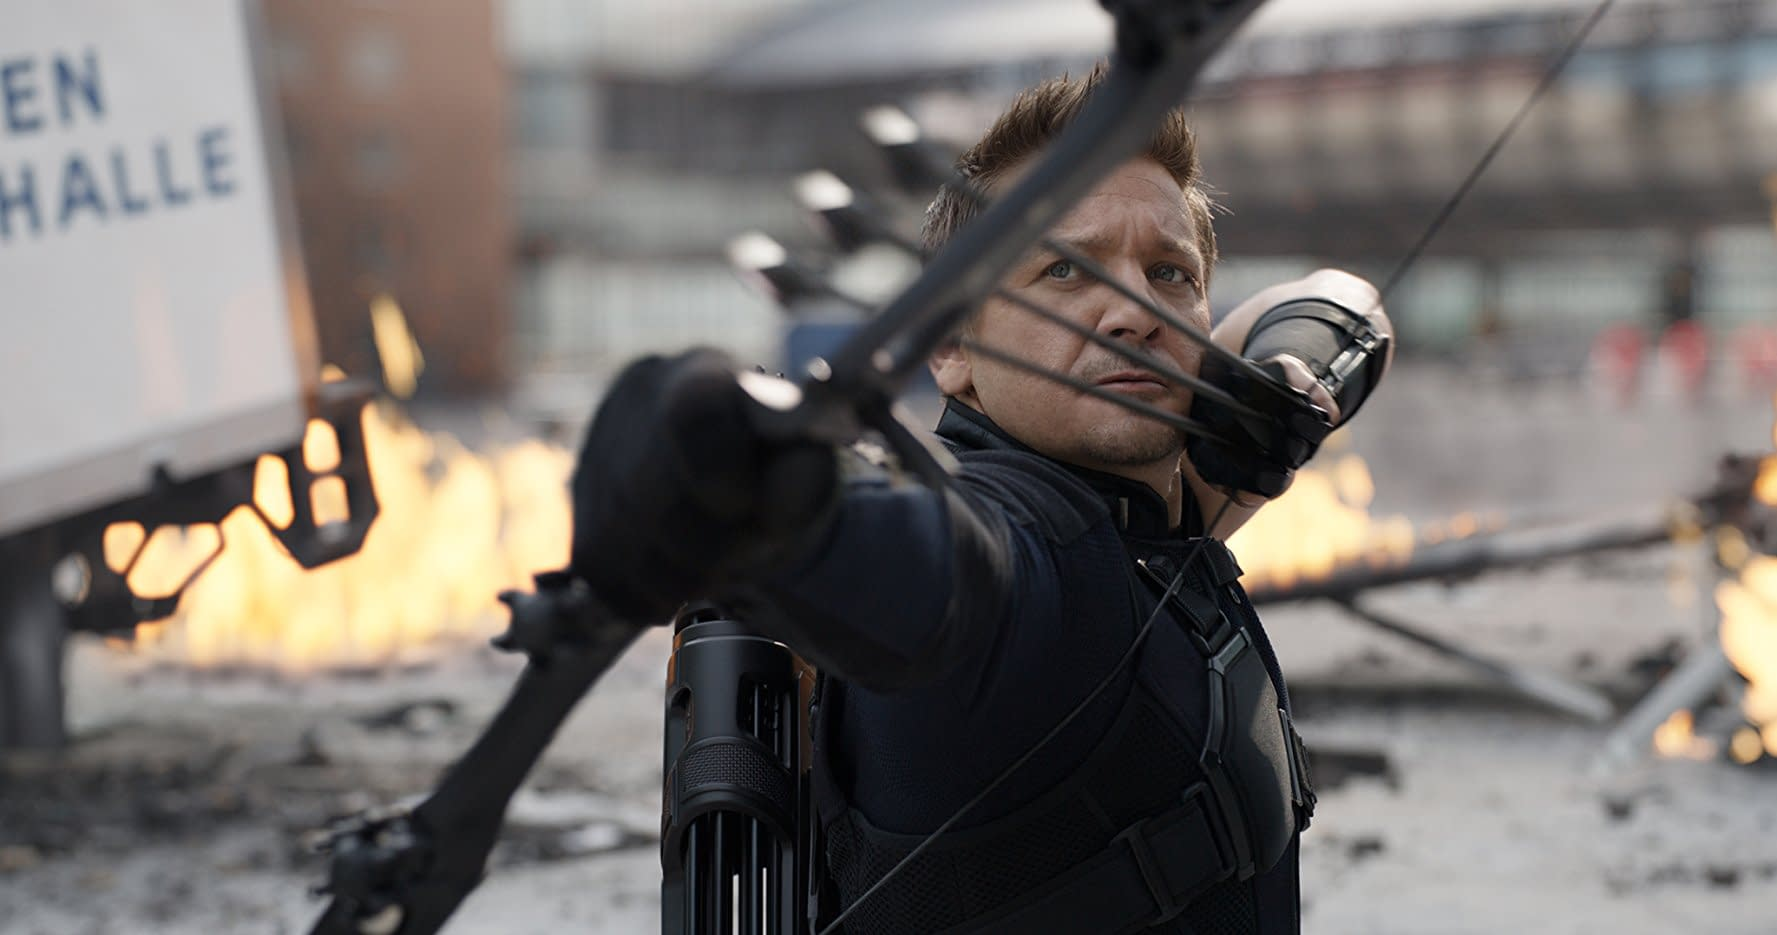 Jeremy Renner Confirms the Russo Brothers Got Death Threats Over Avengers: Infinity War